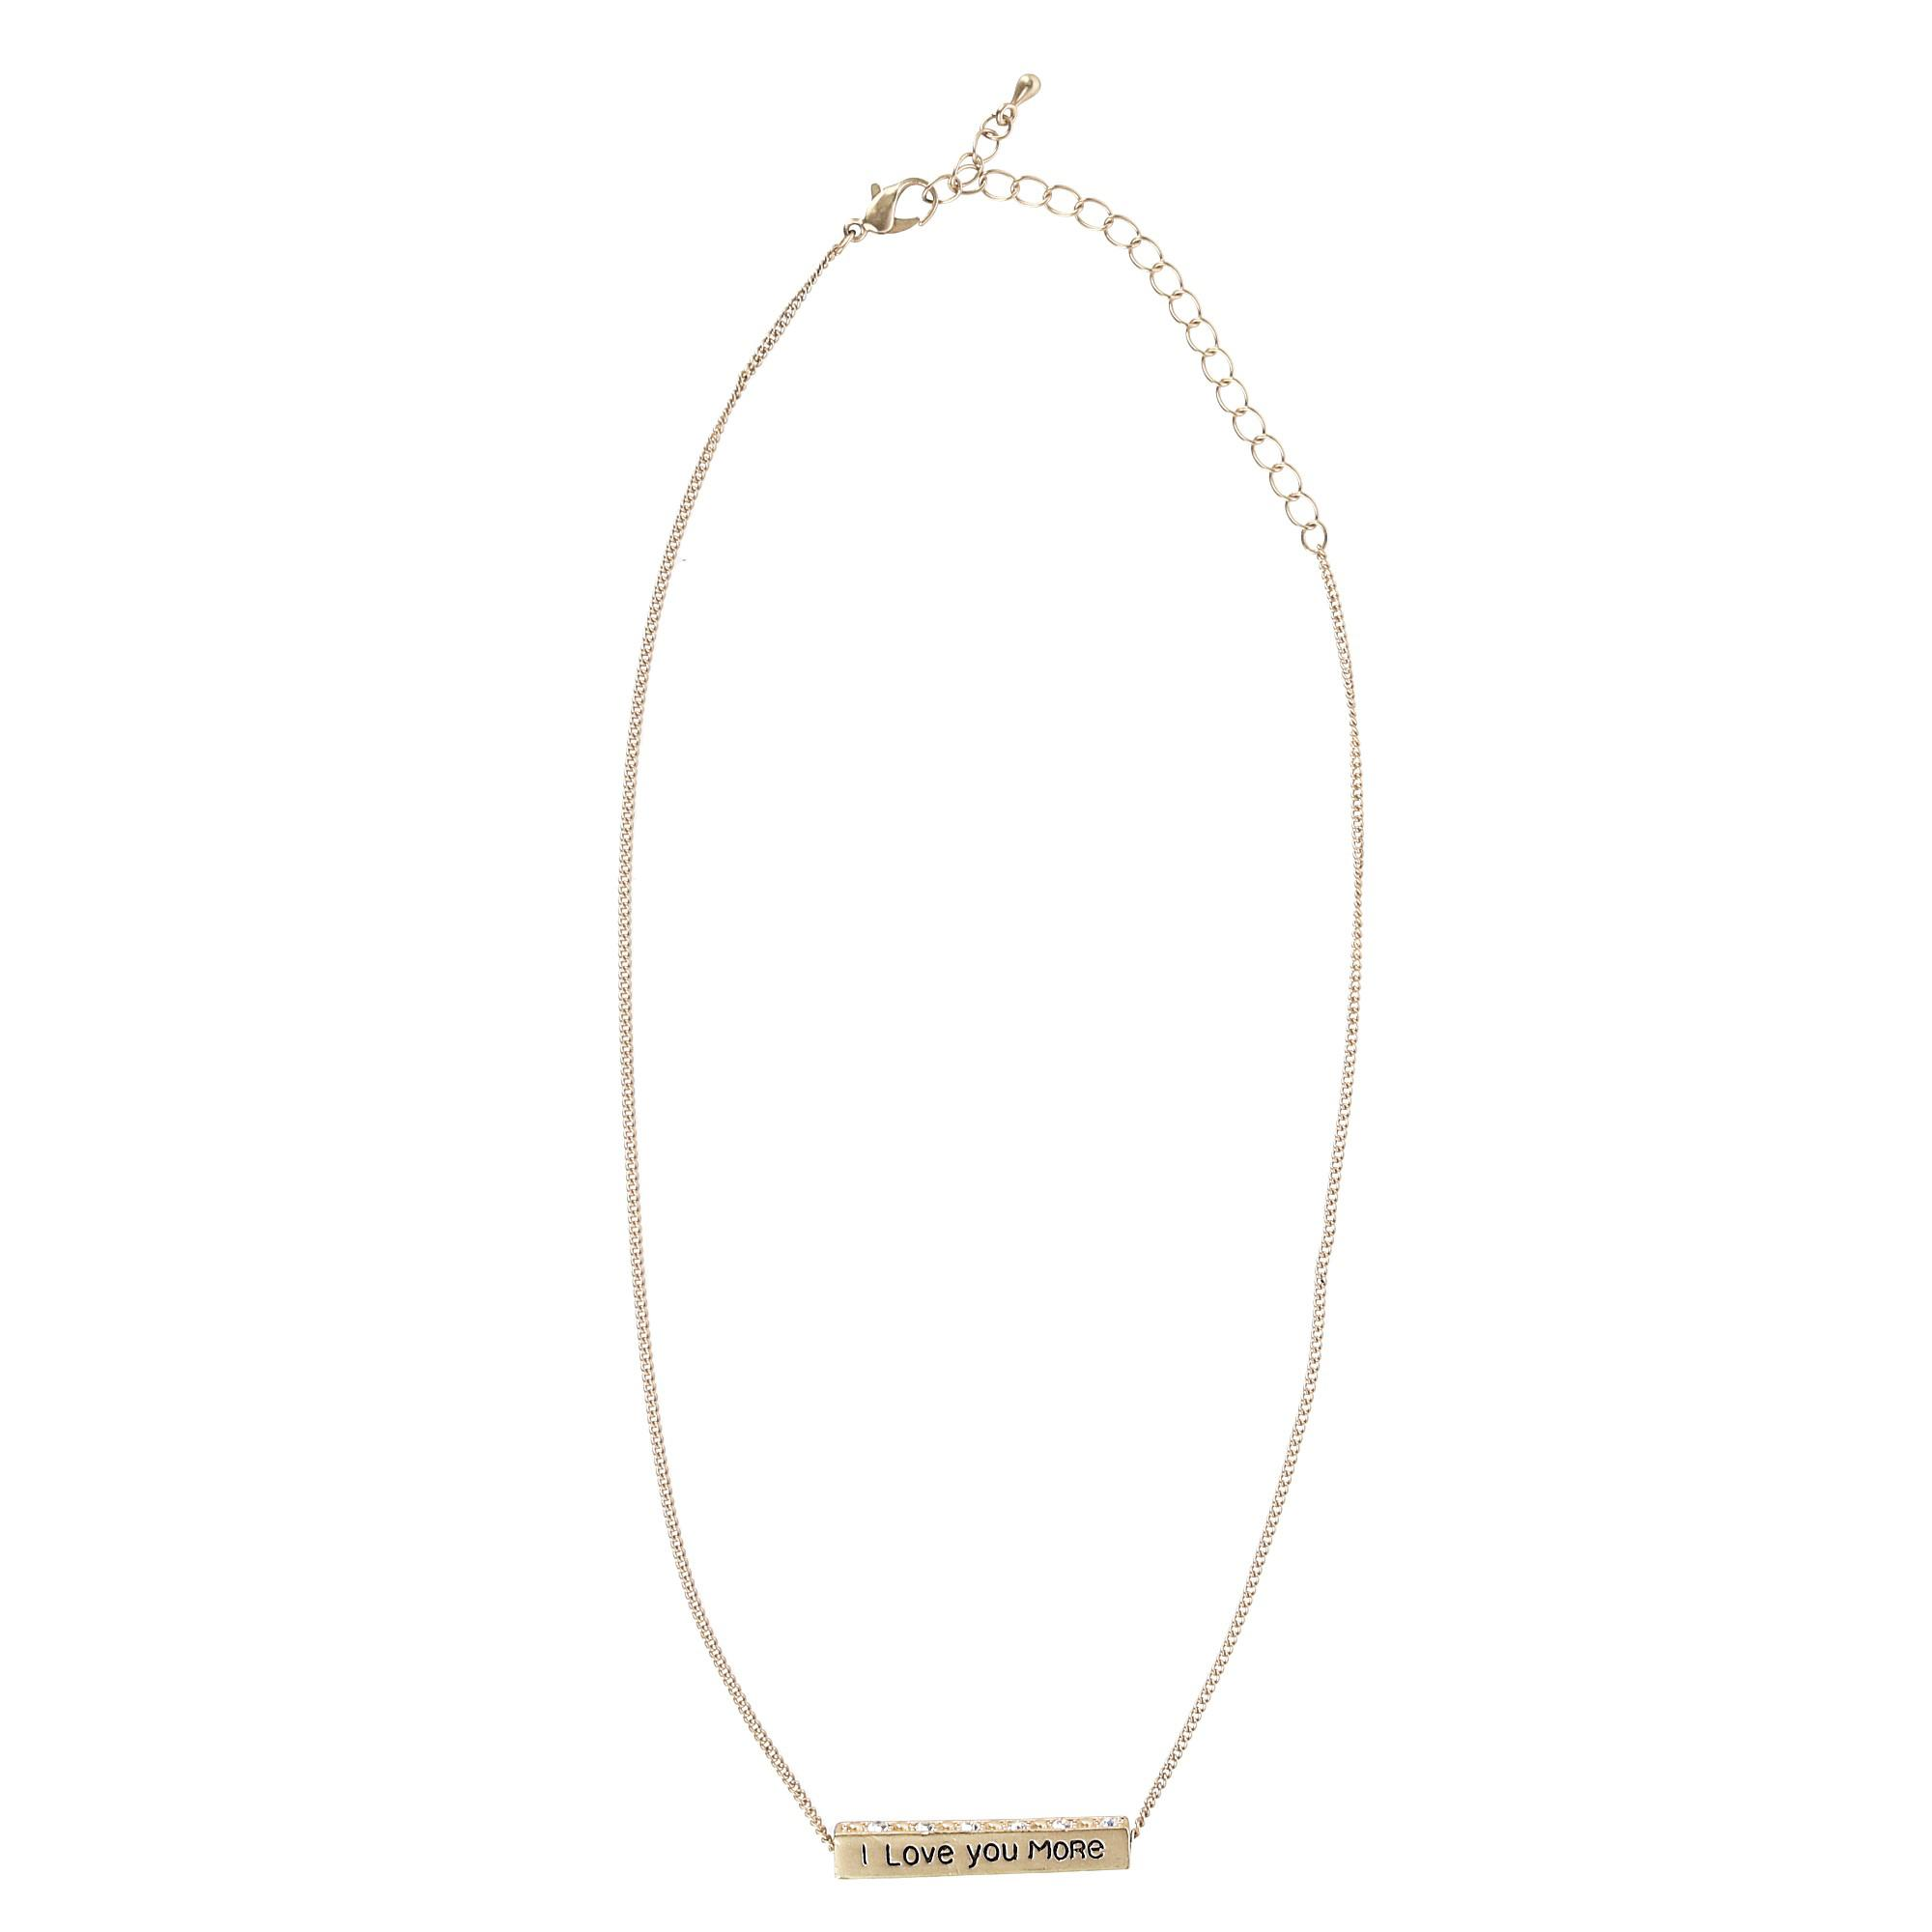 Accessorize Me I Love You More Bar Pendant Necklace with Rhinestones - image 5 of 5